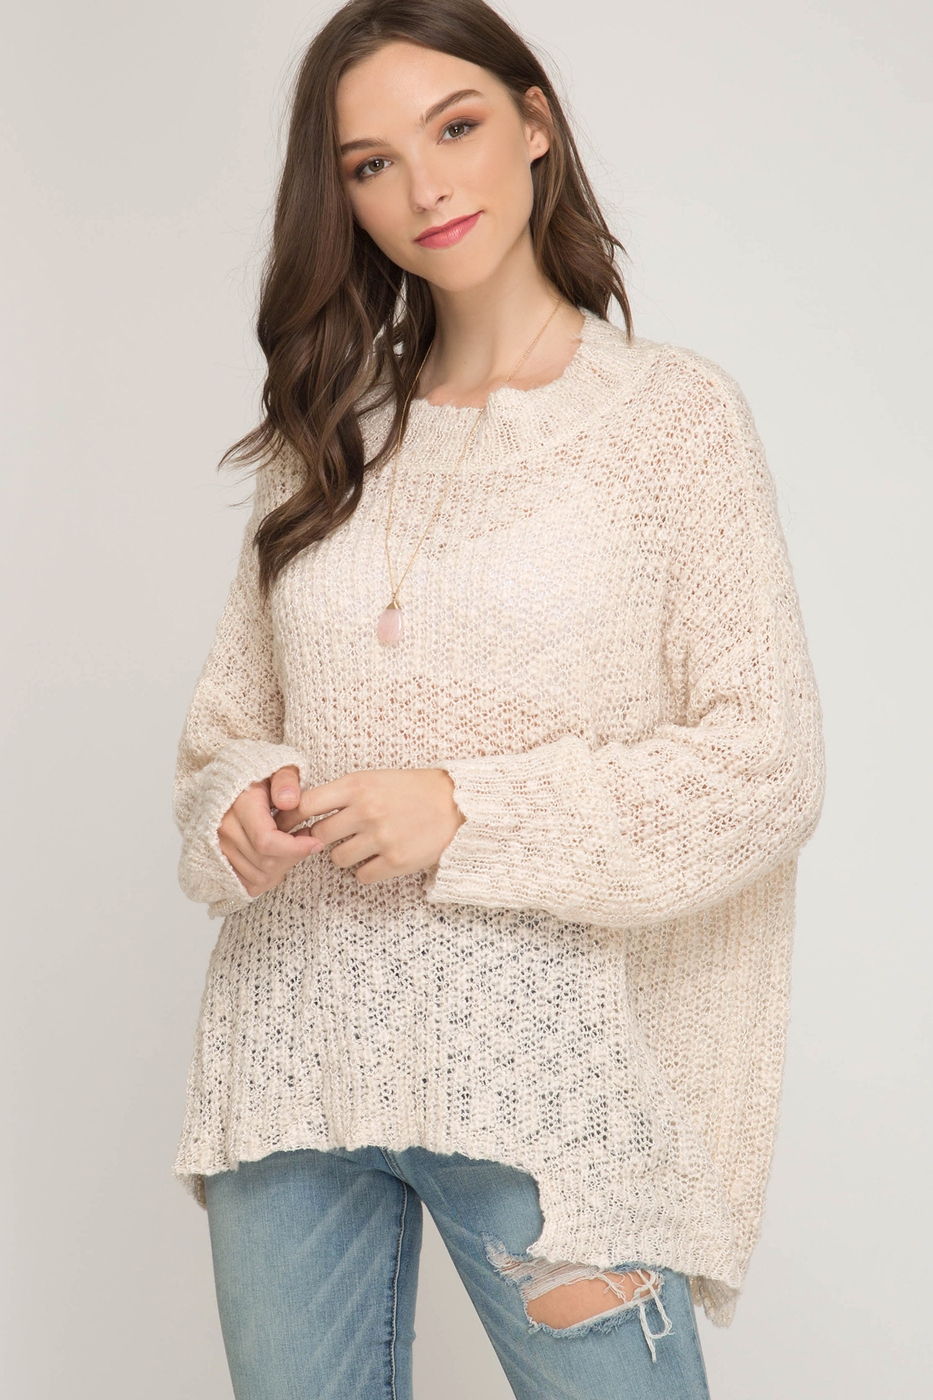 ASYMMETRICAL METAL YARN SWEATER TOP - orangeshine.com